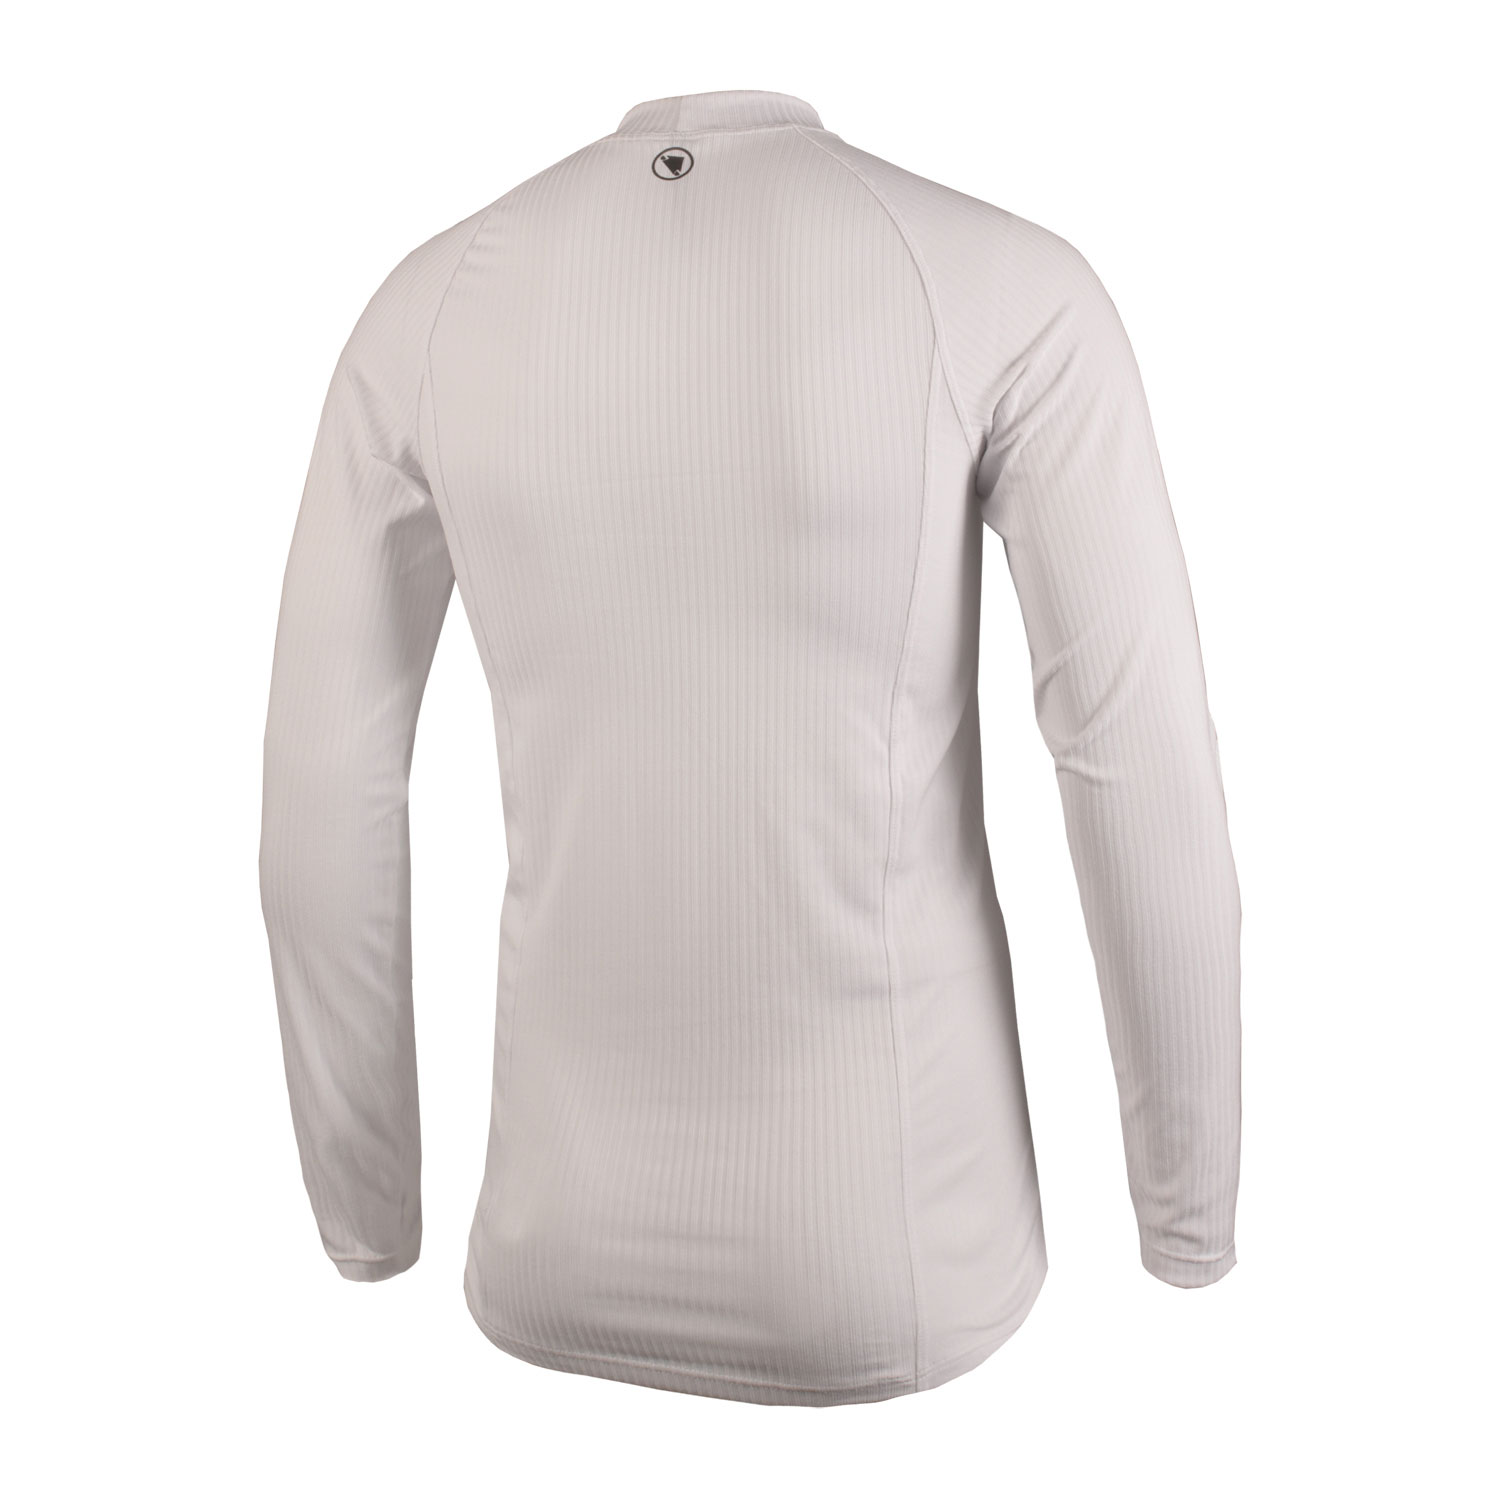 Transrib L/S Baselayer White